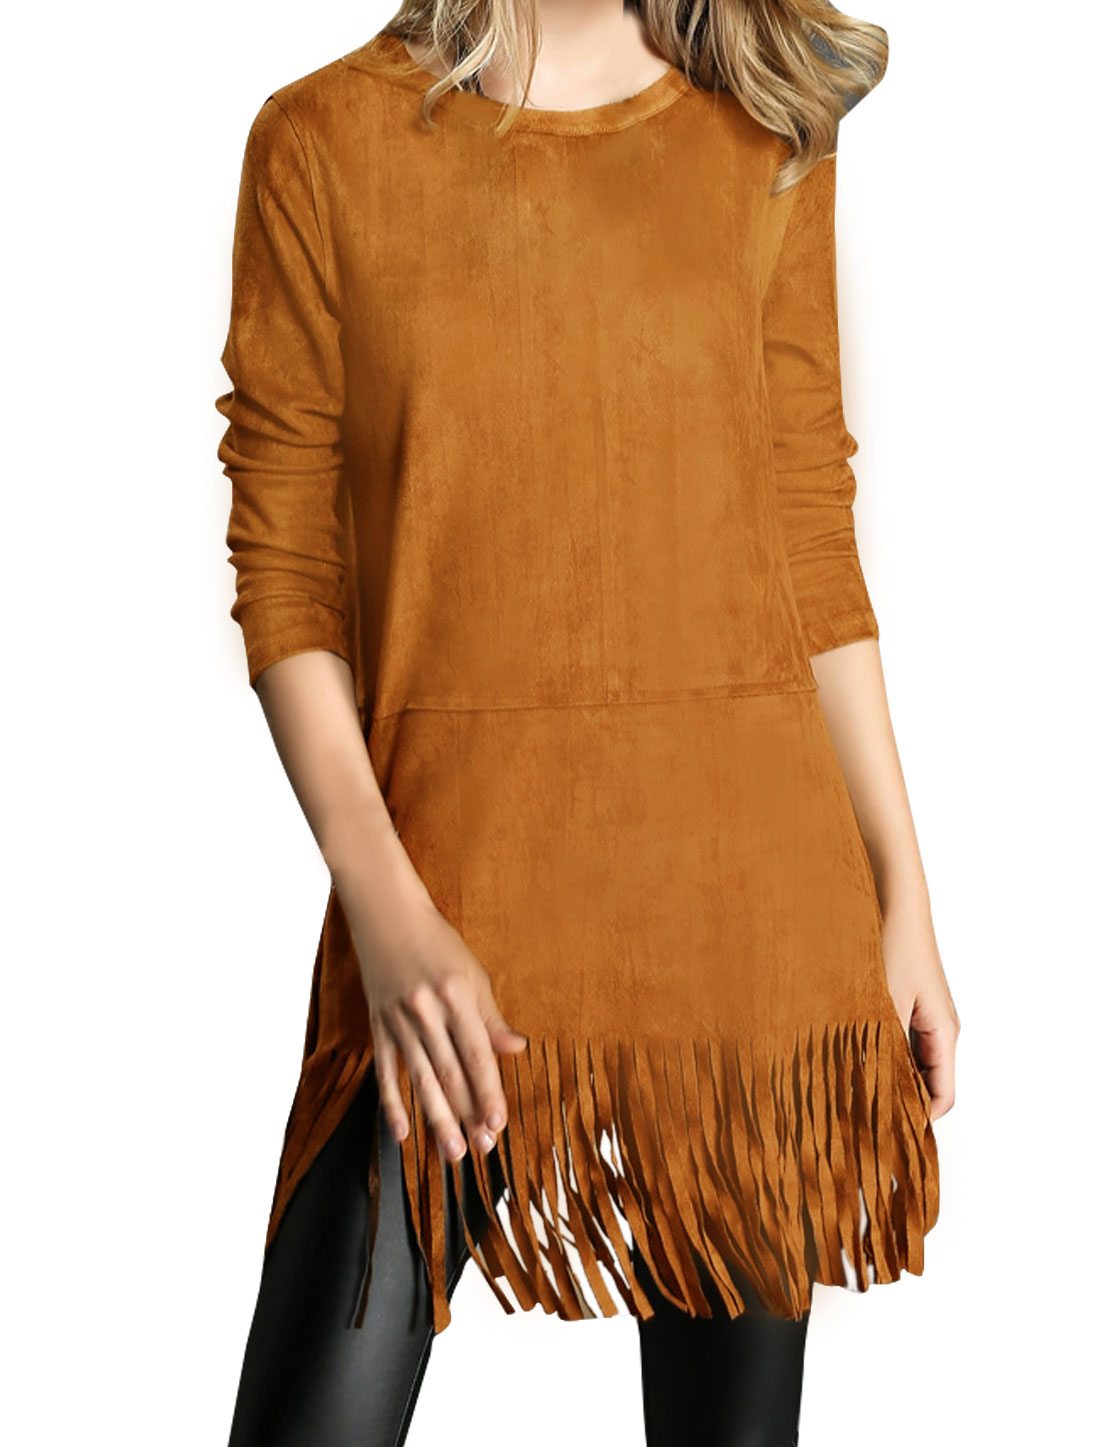 Women Crew Neck Long Sleeves Tassels Hem Loose Tunic Top Brown S